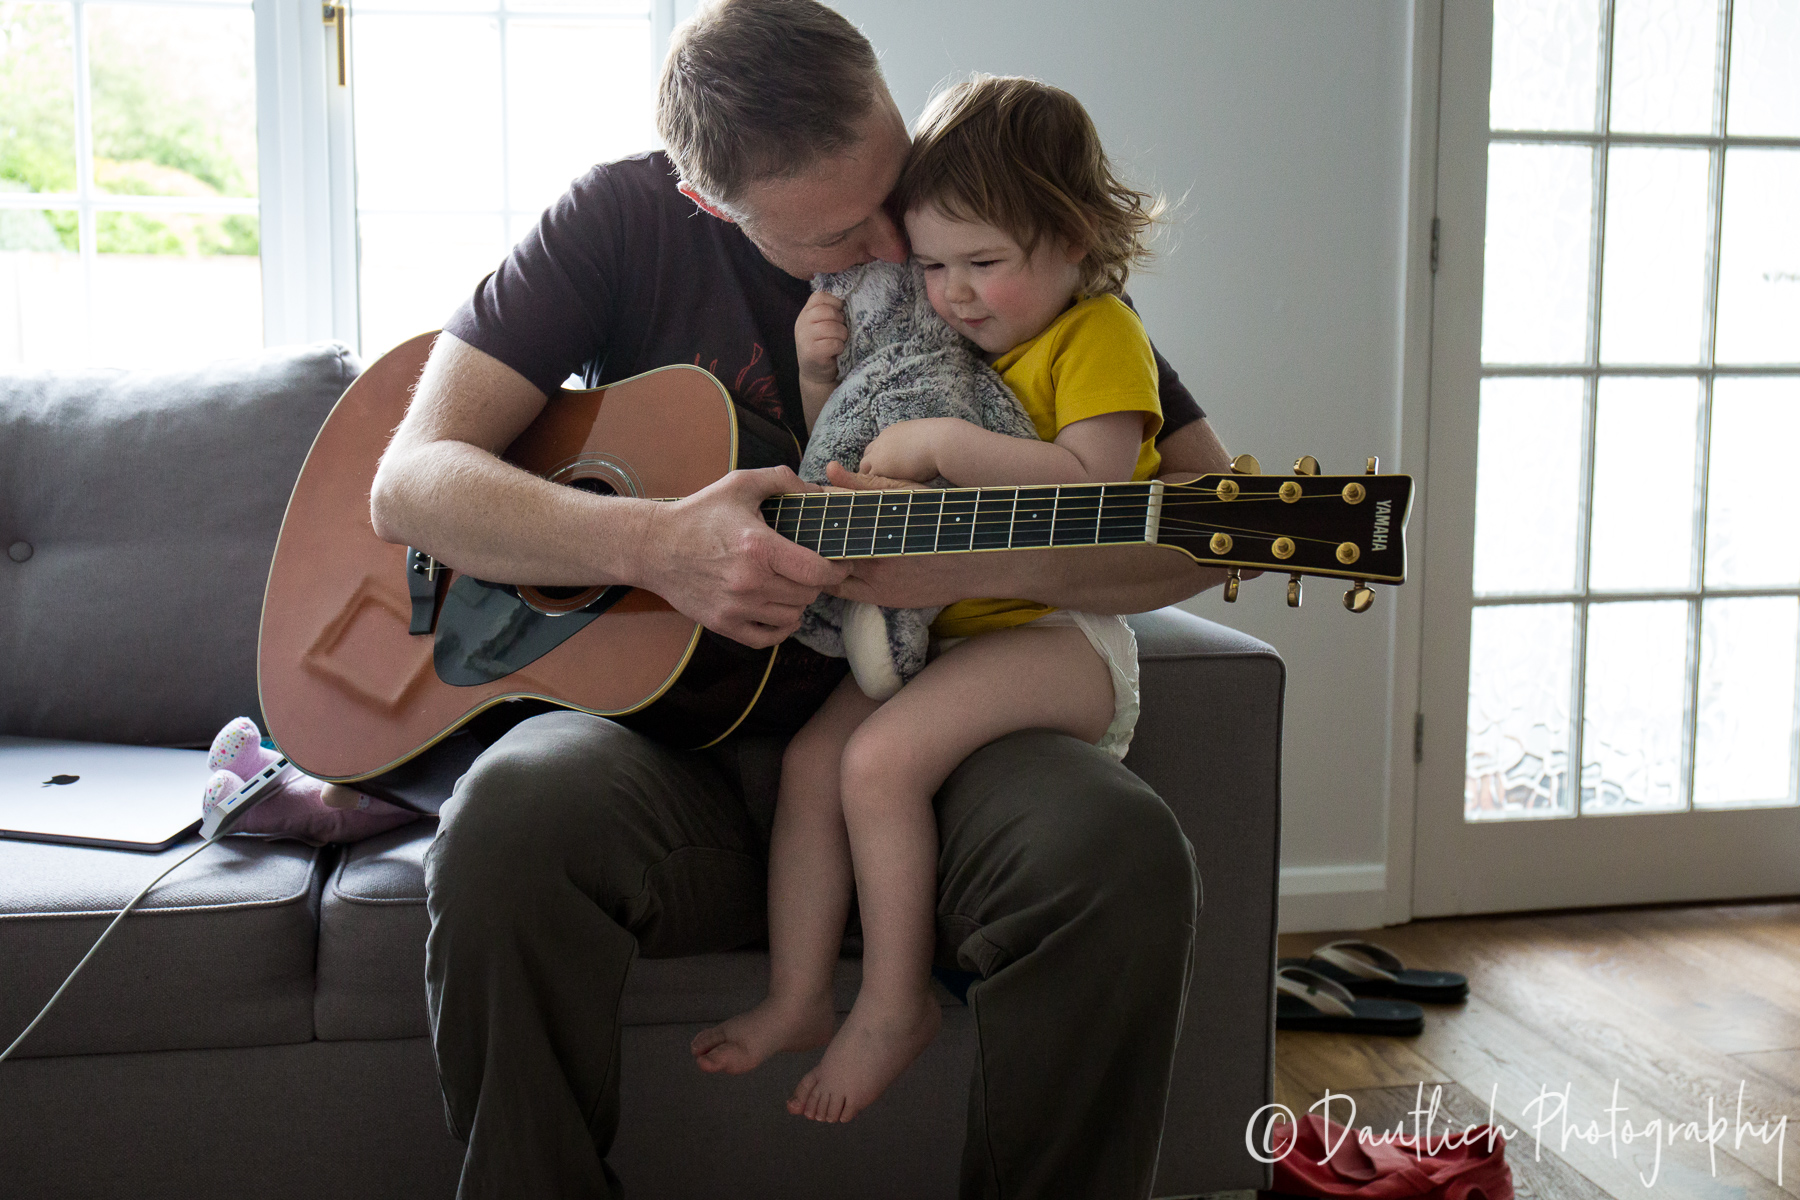 A pause in the music to have a little cuddle.